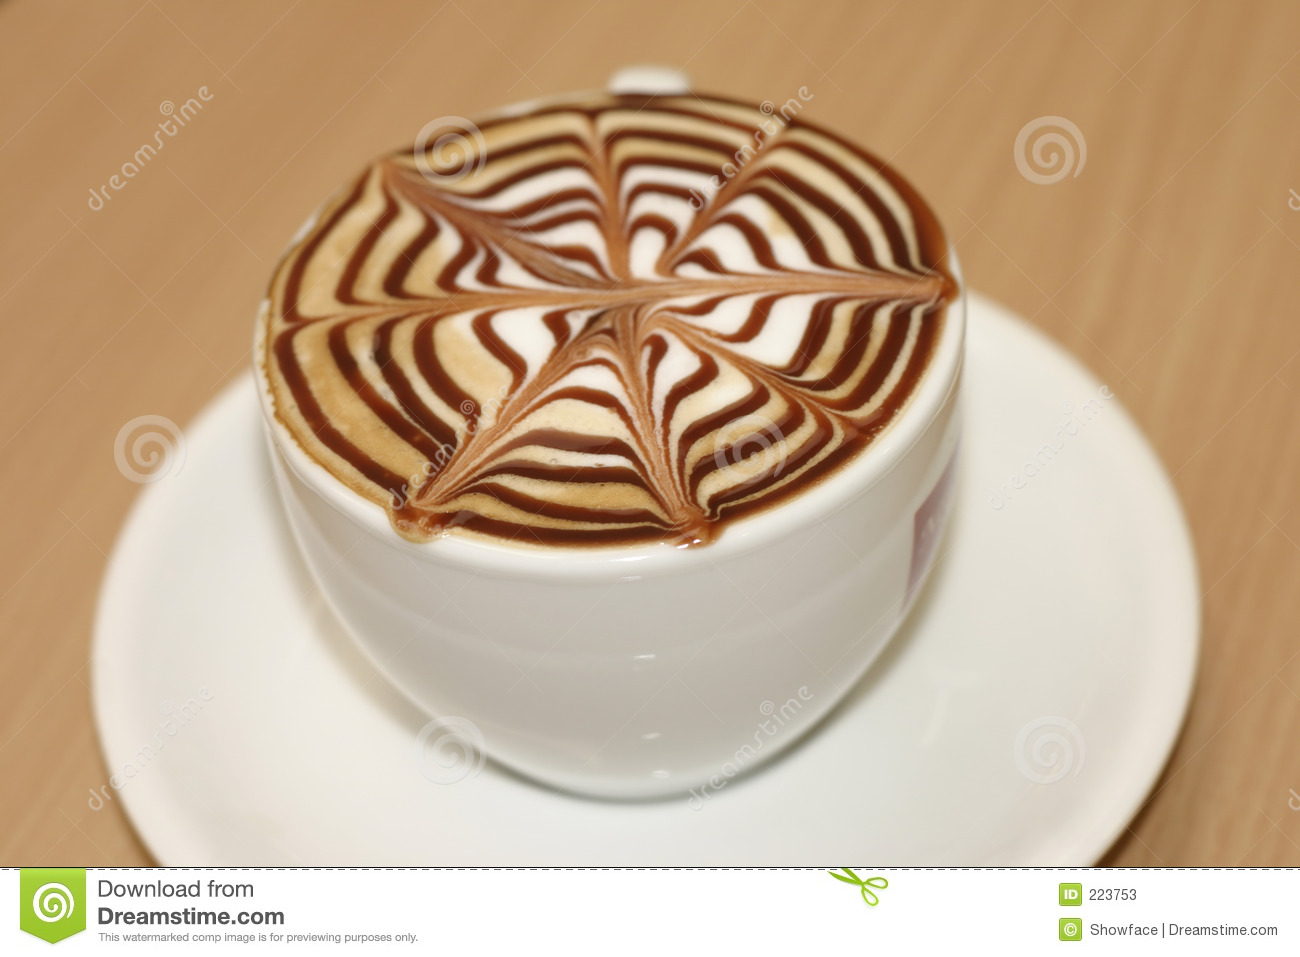 Coffee Break Stock Photos - Image: 223753